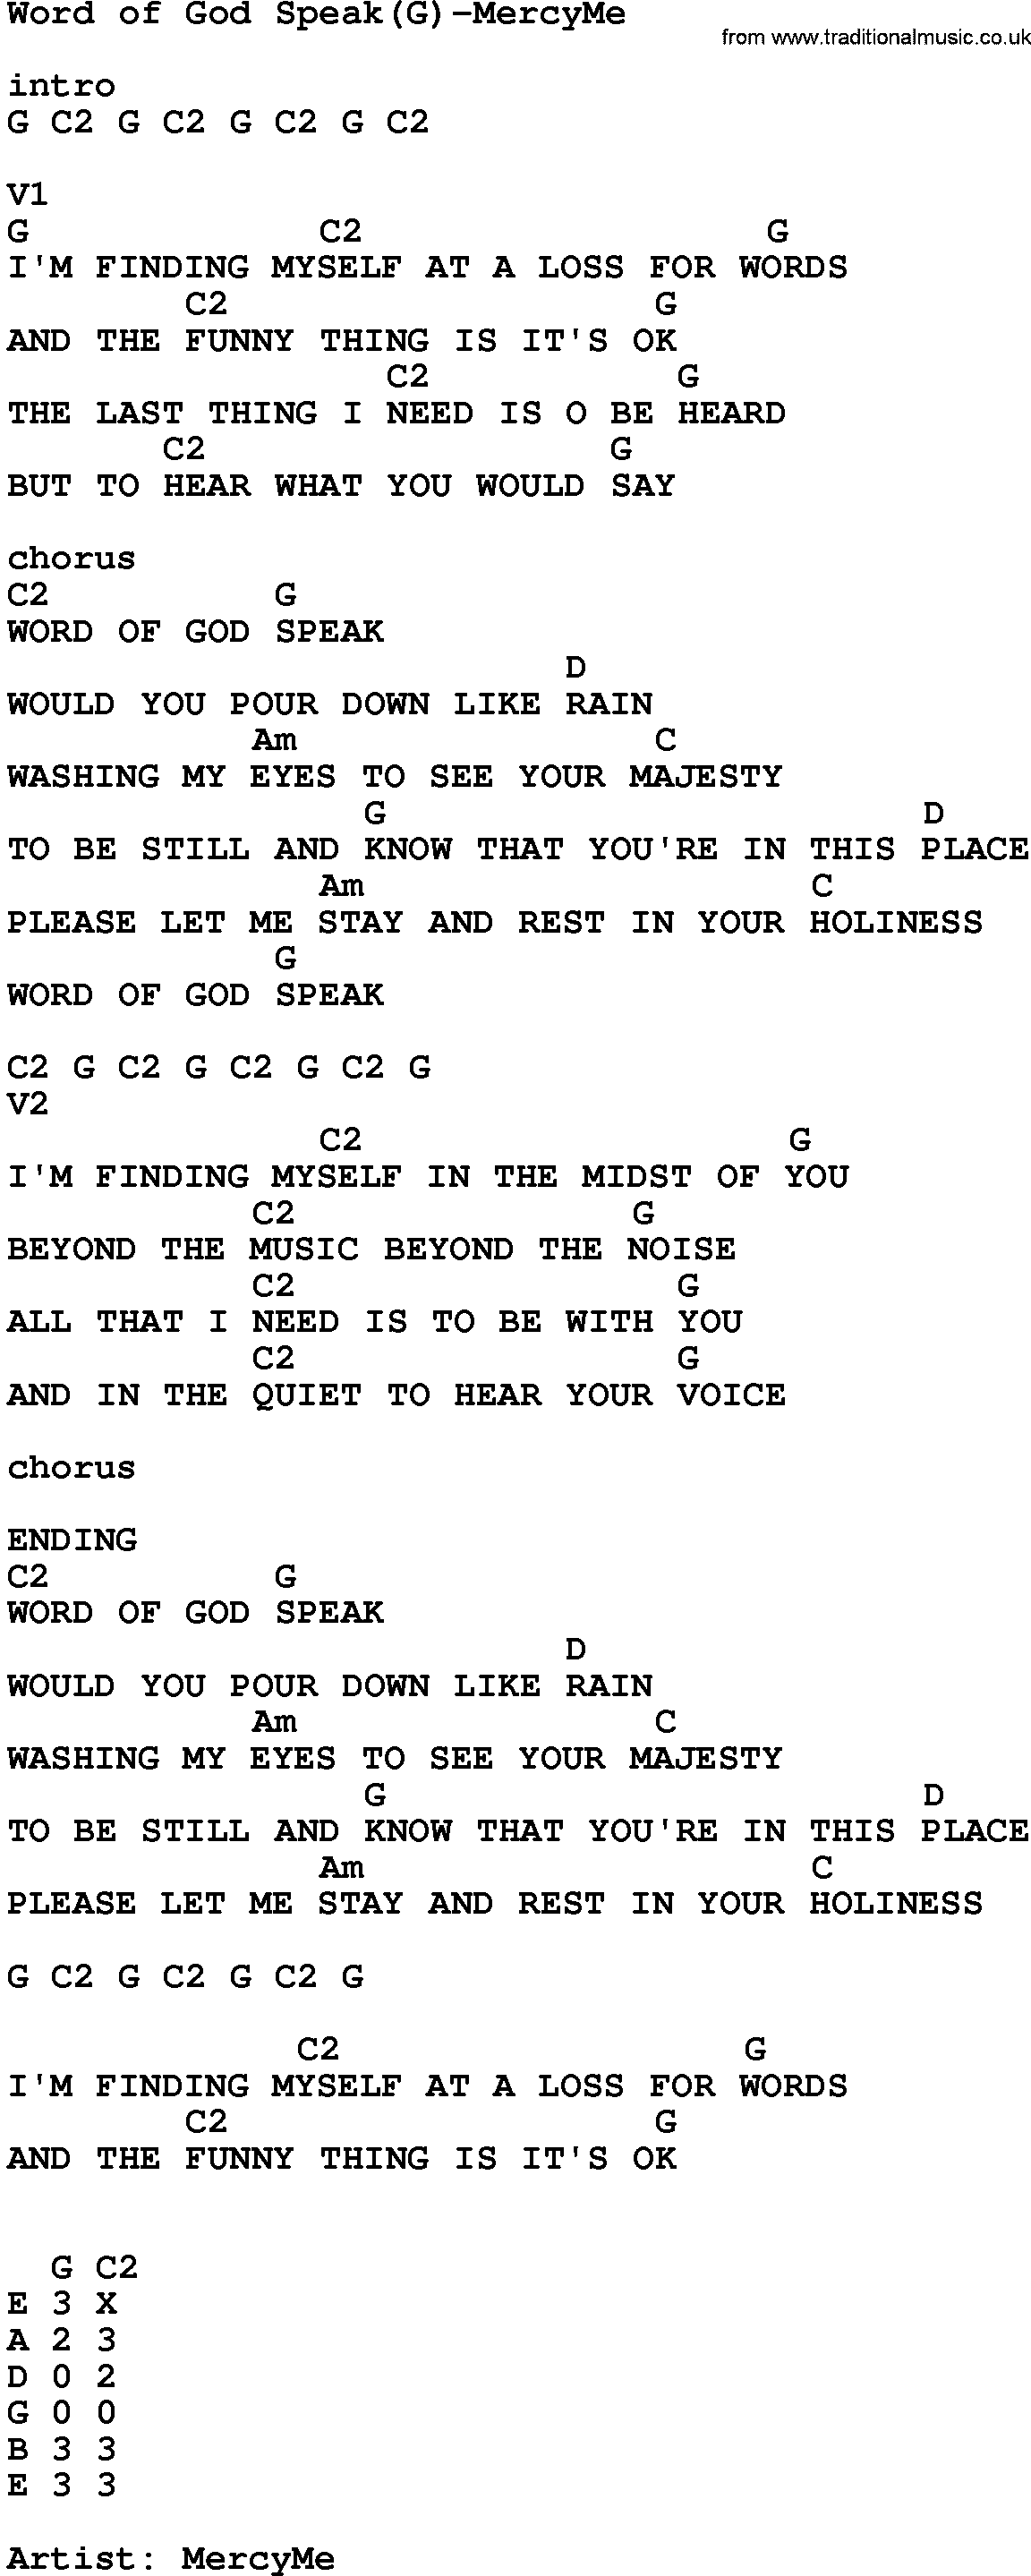 Gospel Song Word God Speak G Mercyme lyrics and chords